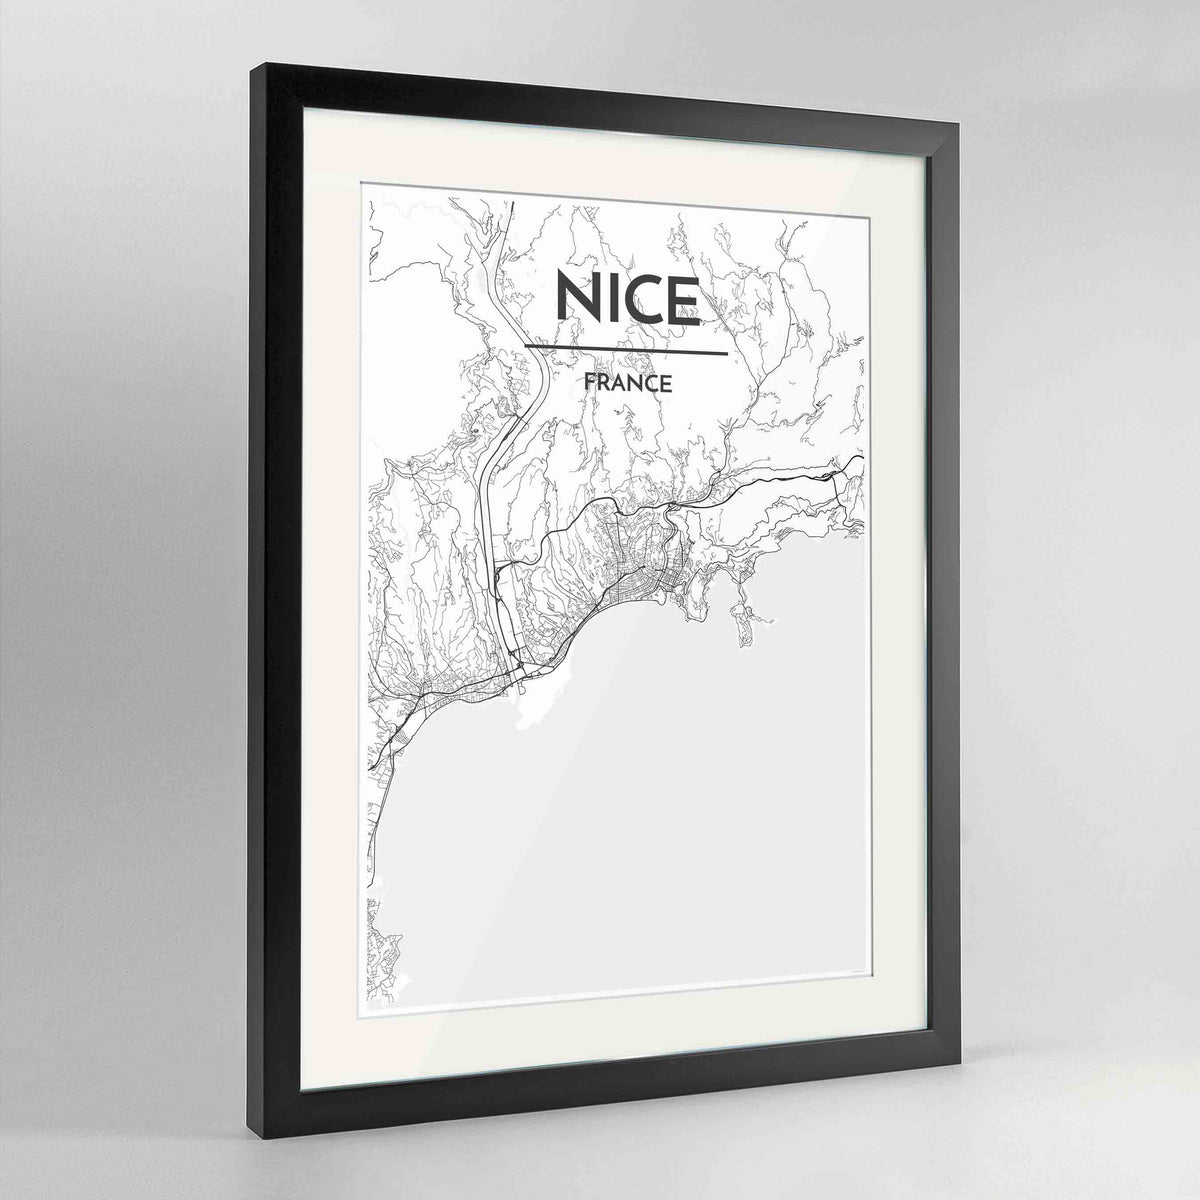 "Framed Nice Map Art Print 24x36"" Contemporary Black frame Point Two Design Group"